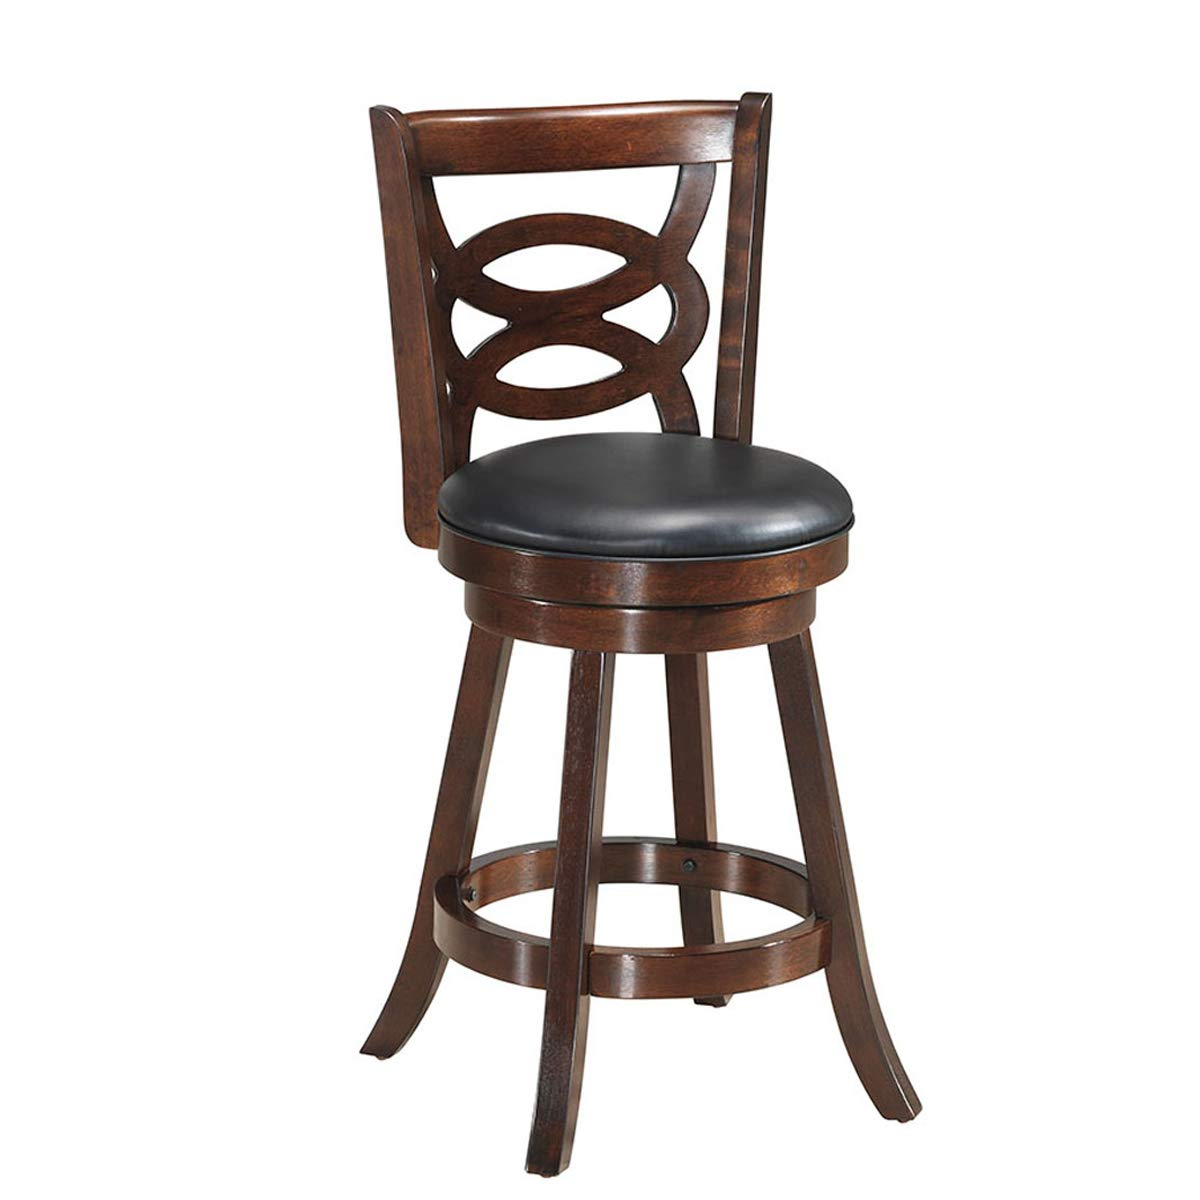 Winsome Wood S 2 Wood 30-Inch Bar Stools, Espresso Finish